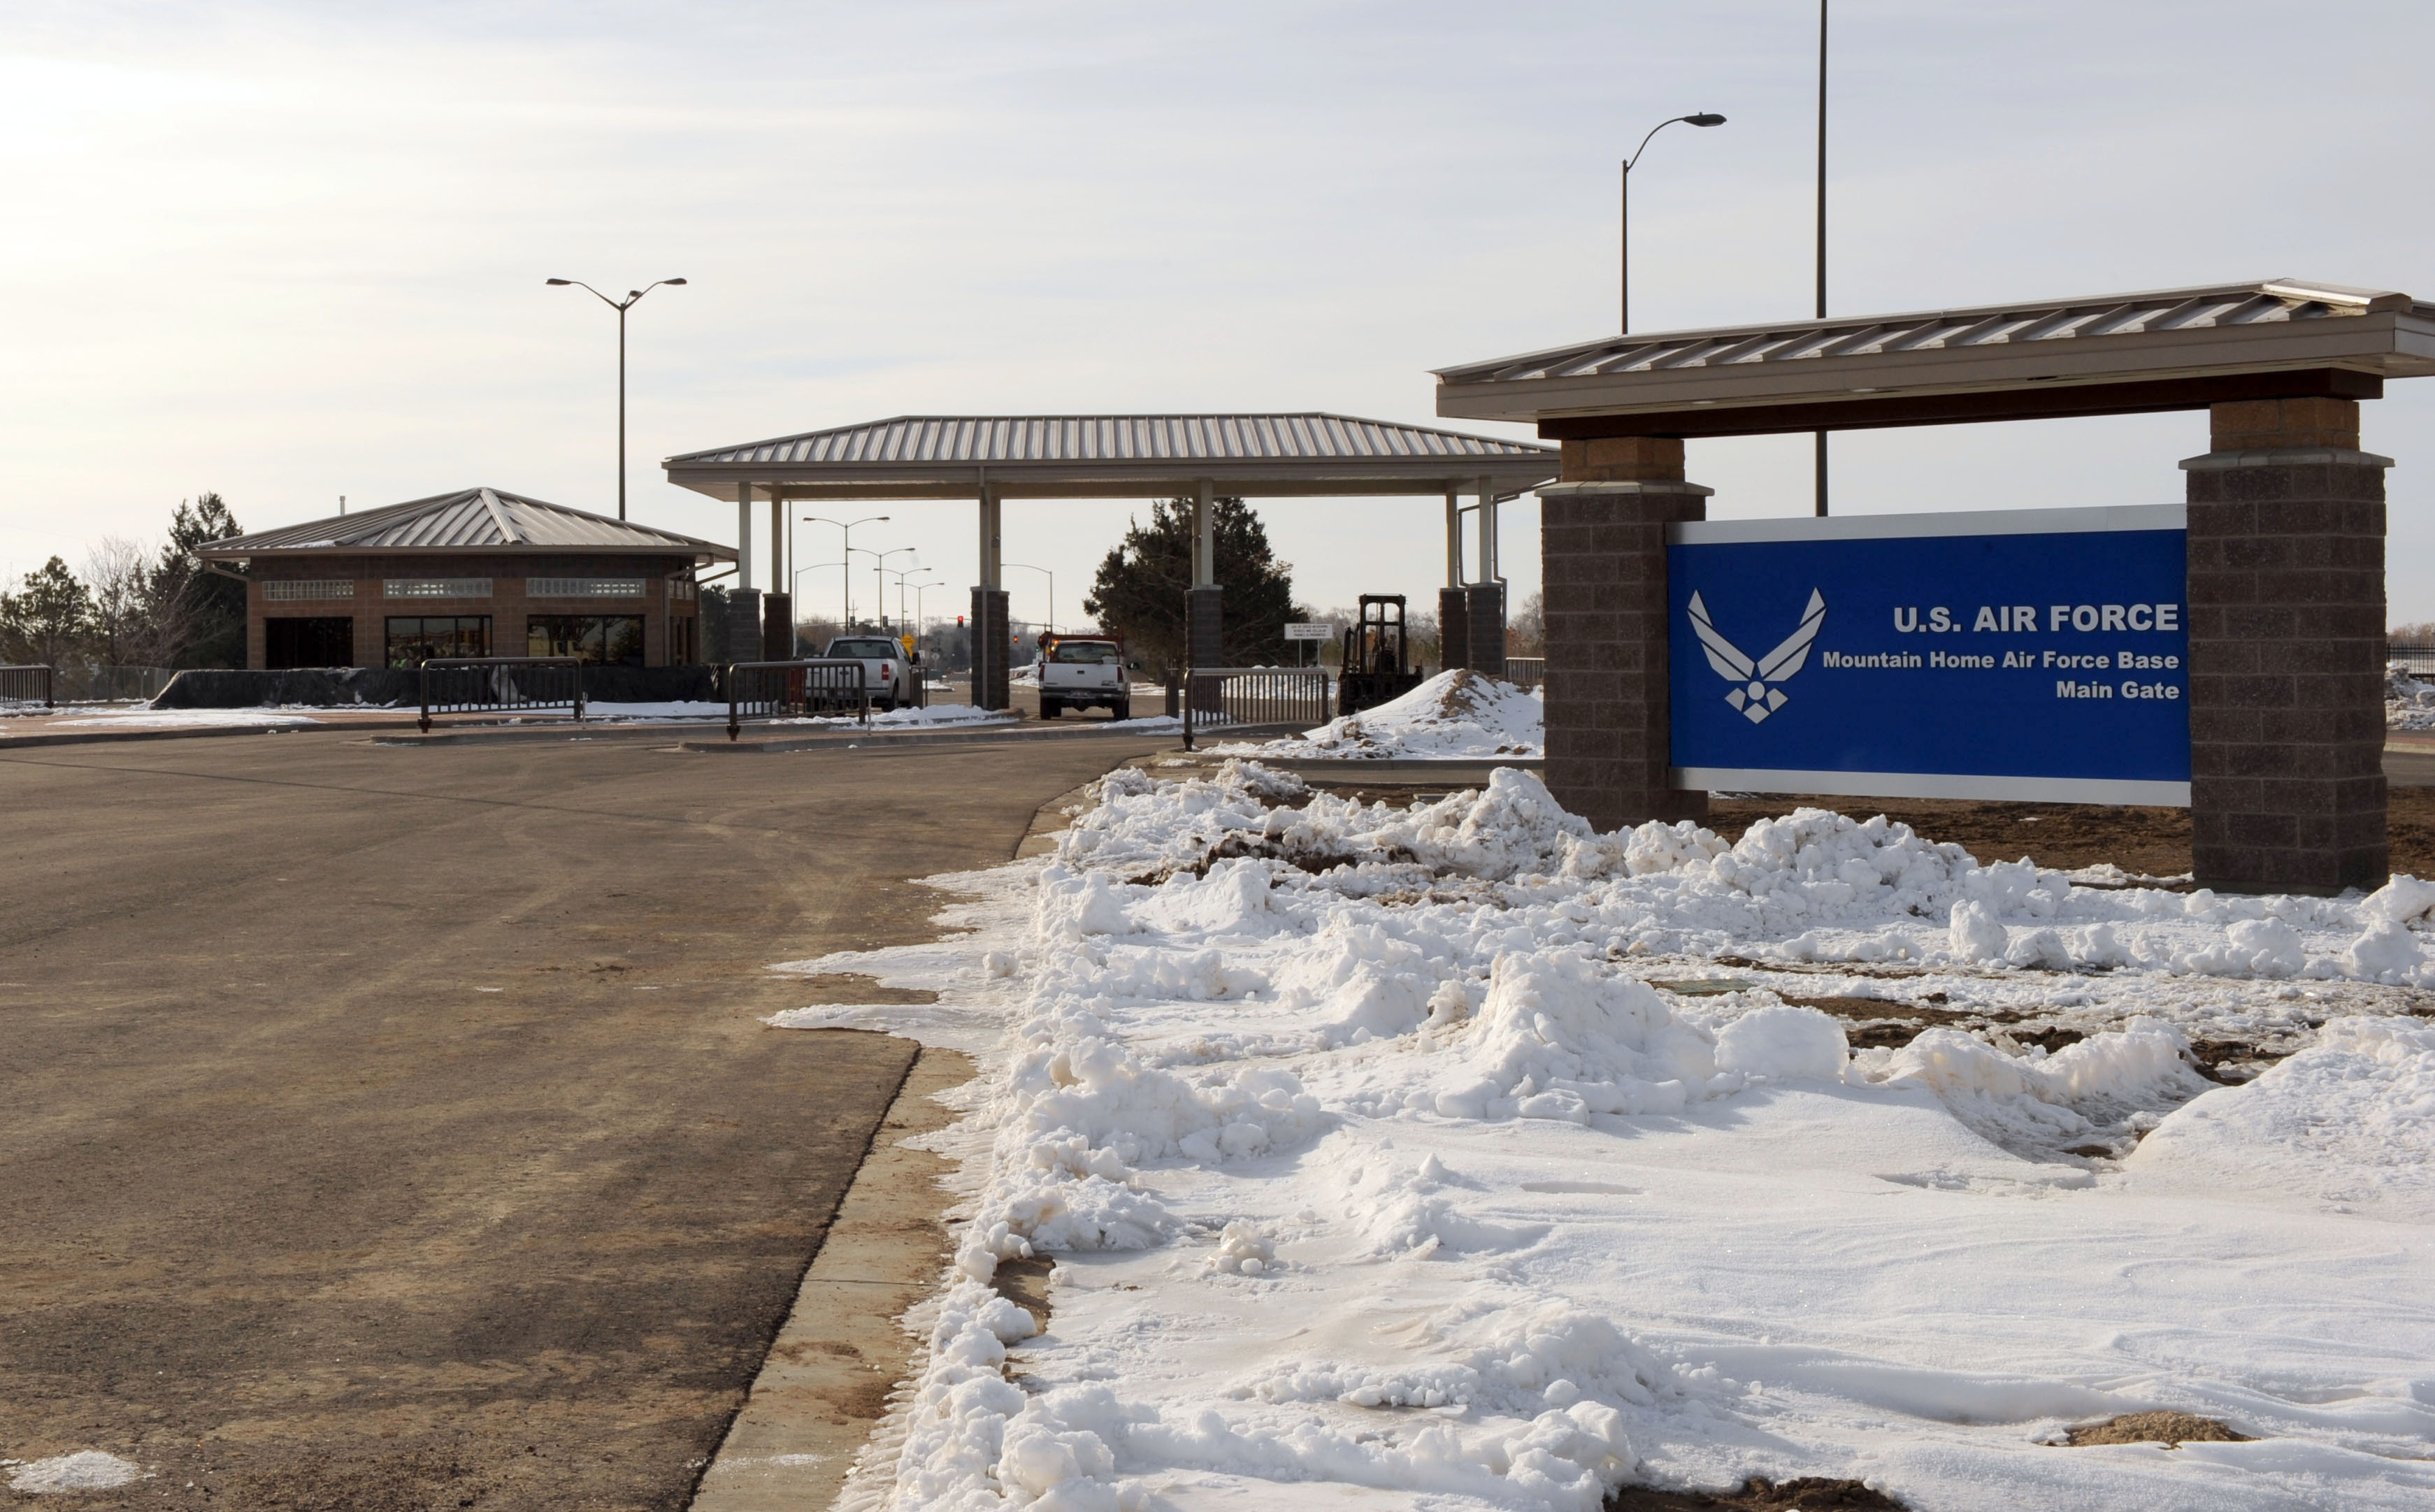 Mountain Home Air Force Base, Main Gate